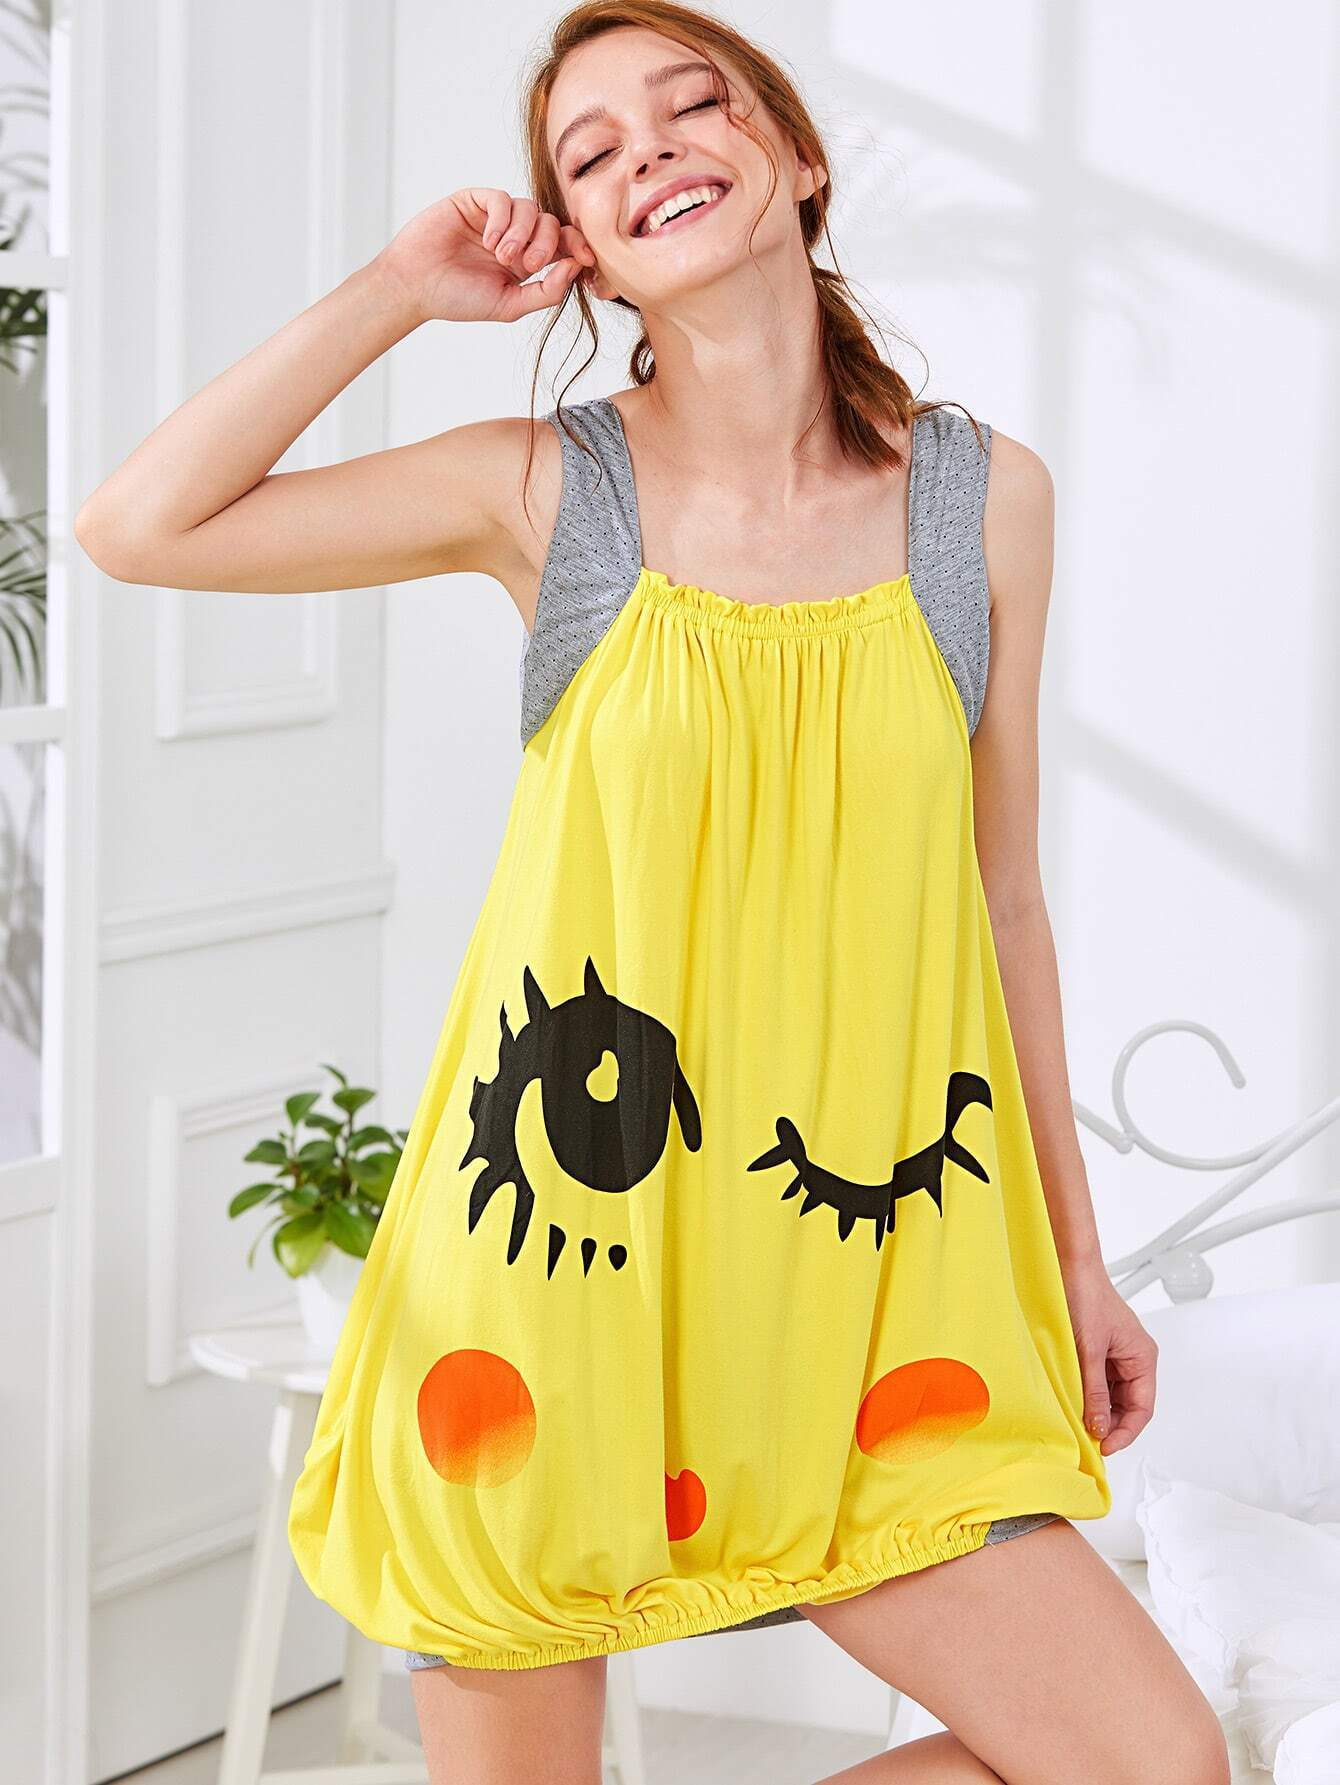 Wink Eyes Print Nightdress creative a60 black